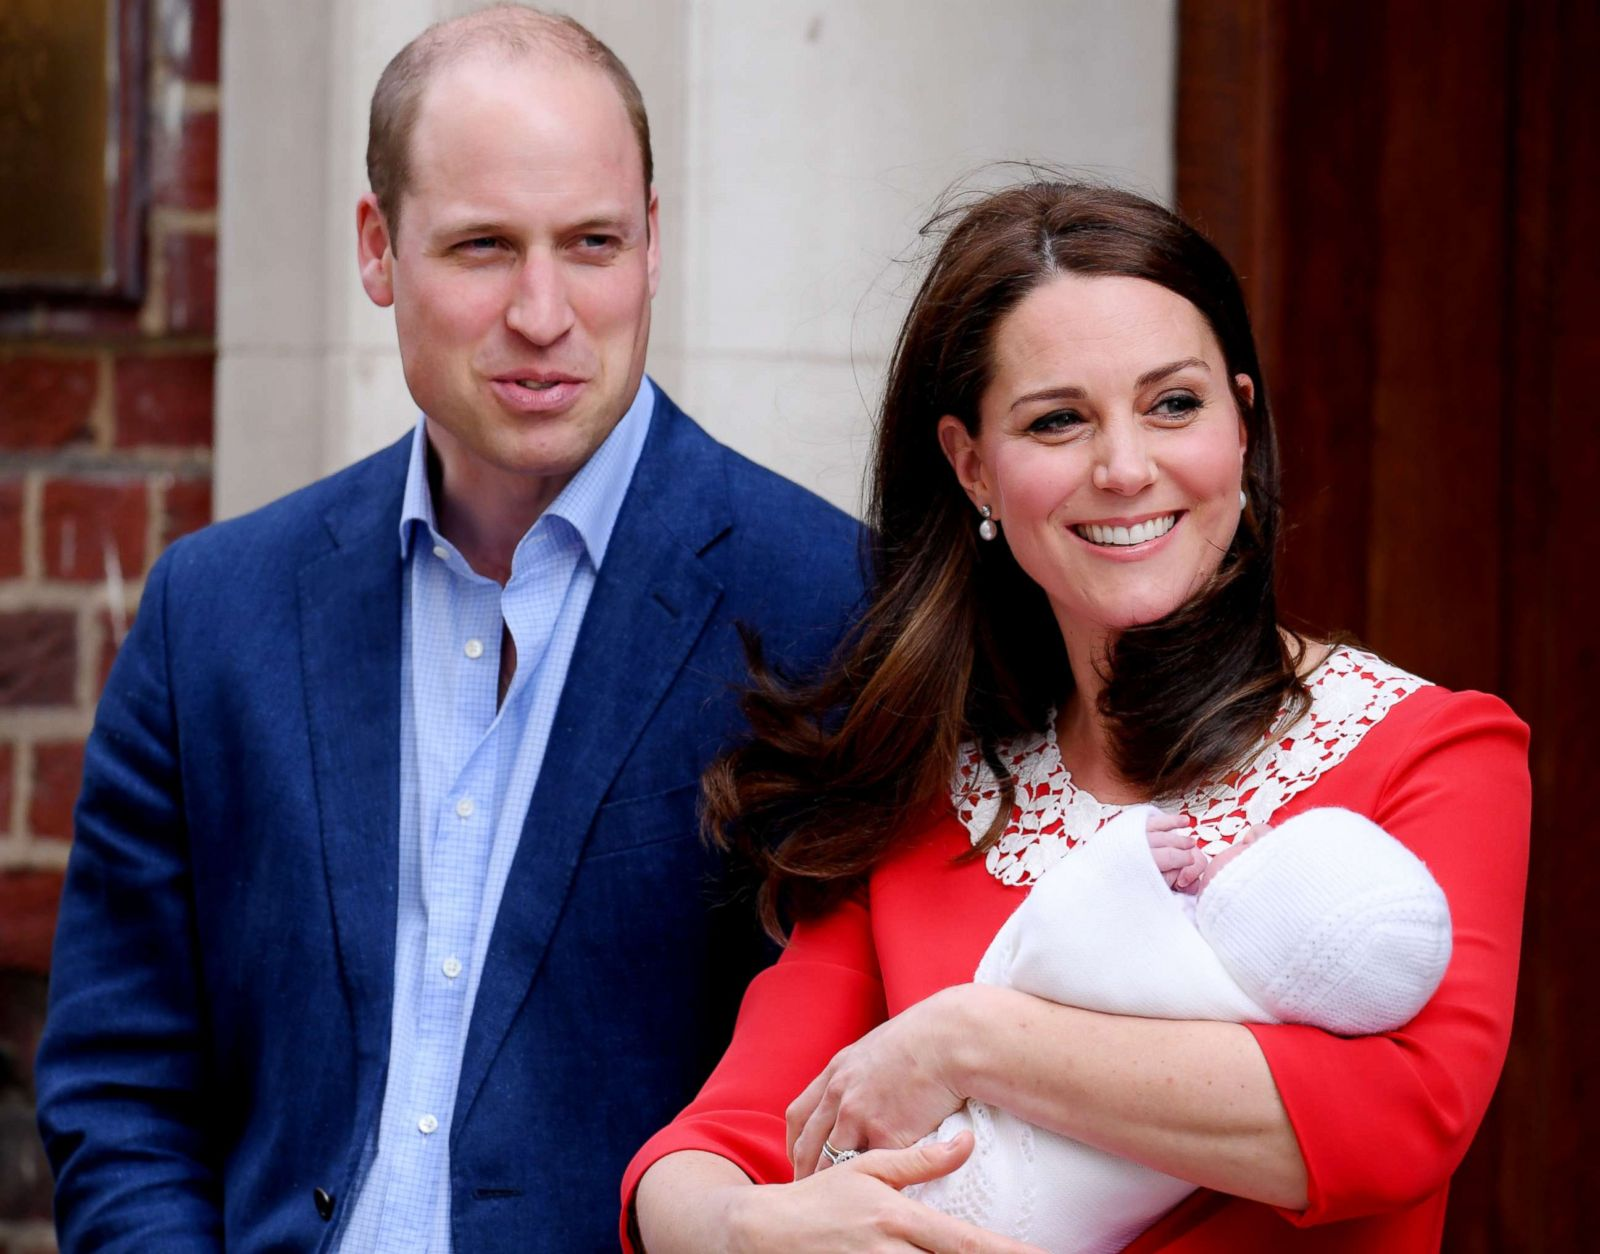 william and kate a royal love story sun the